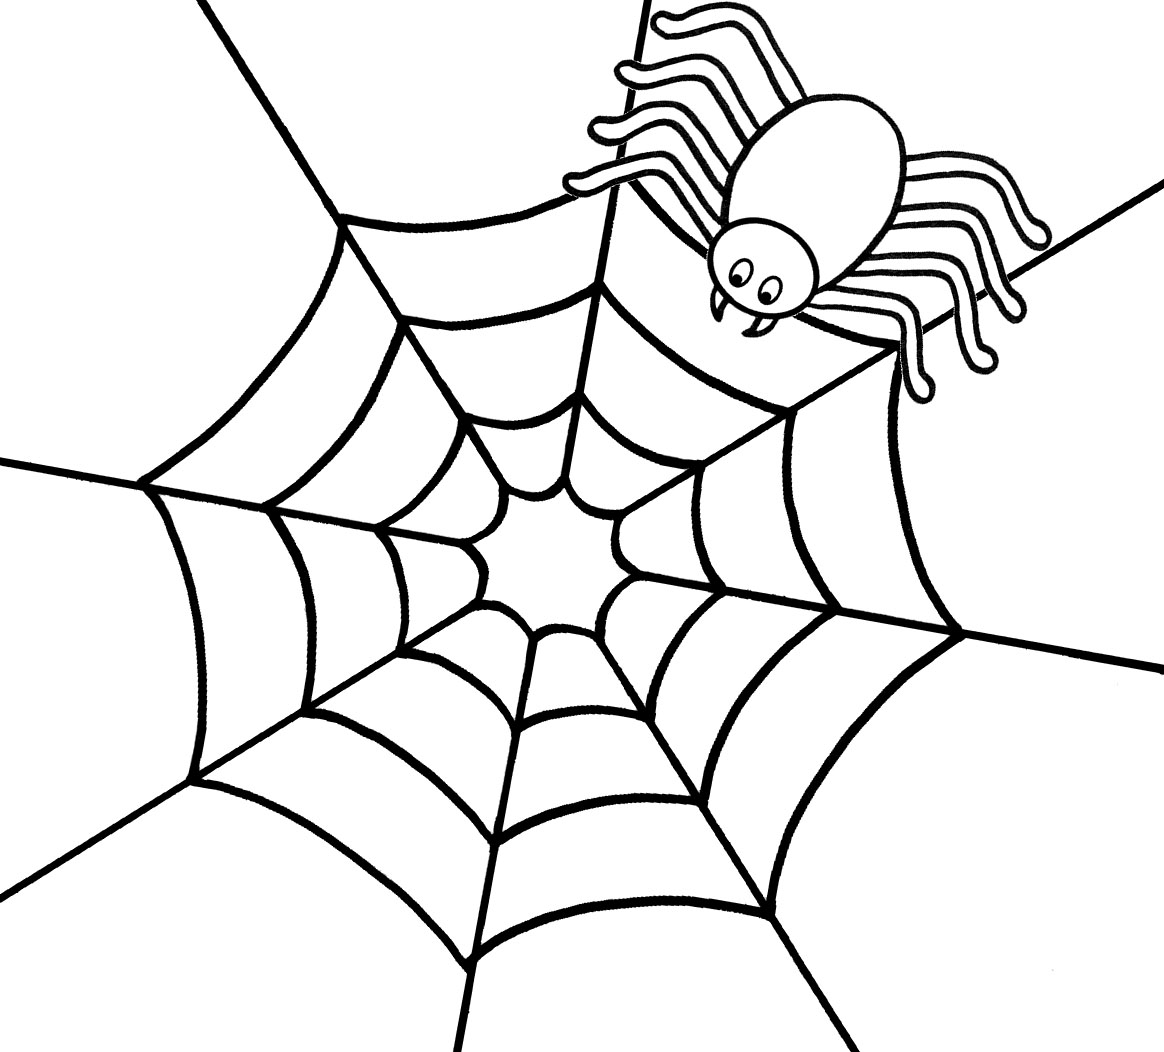 Spider On Web Drawing At Getdrawings